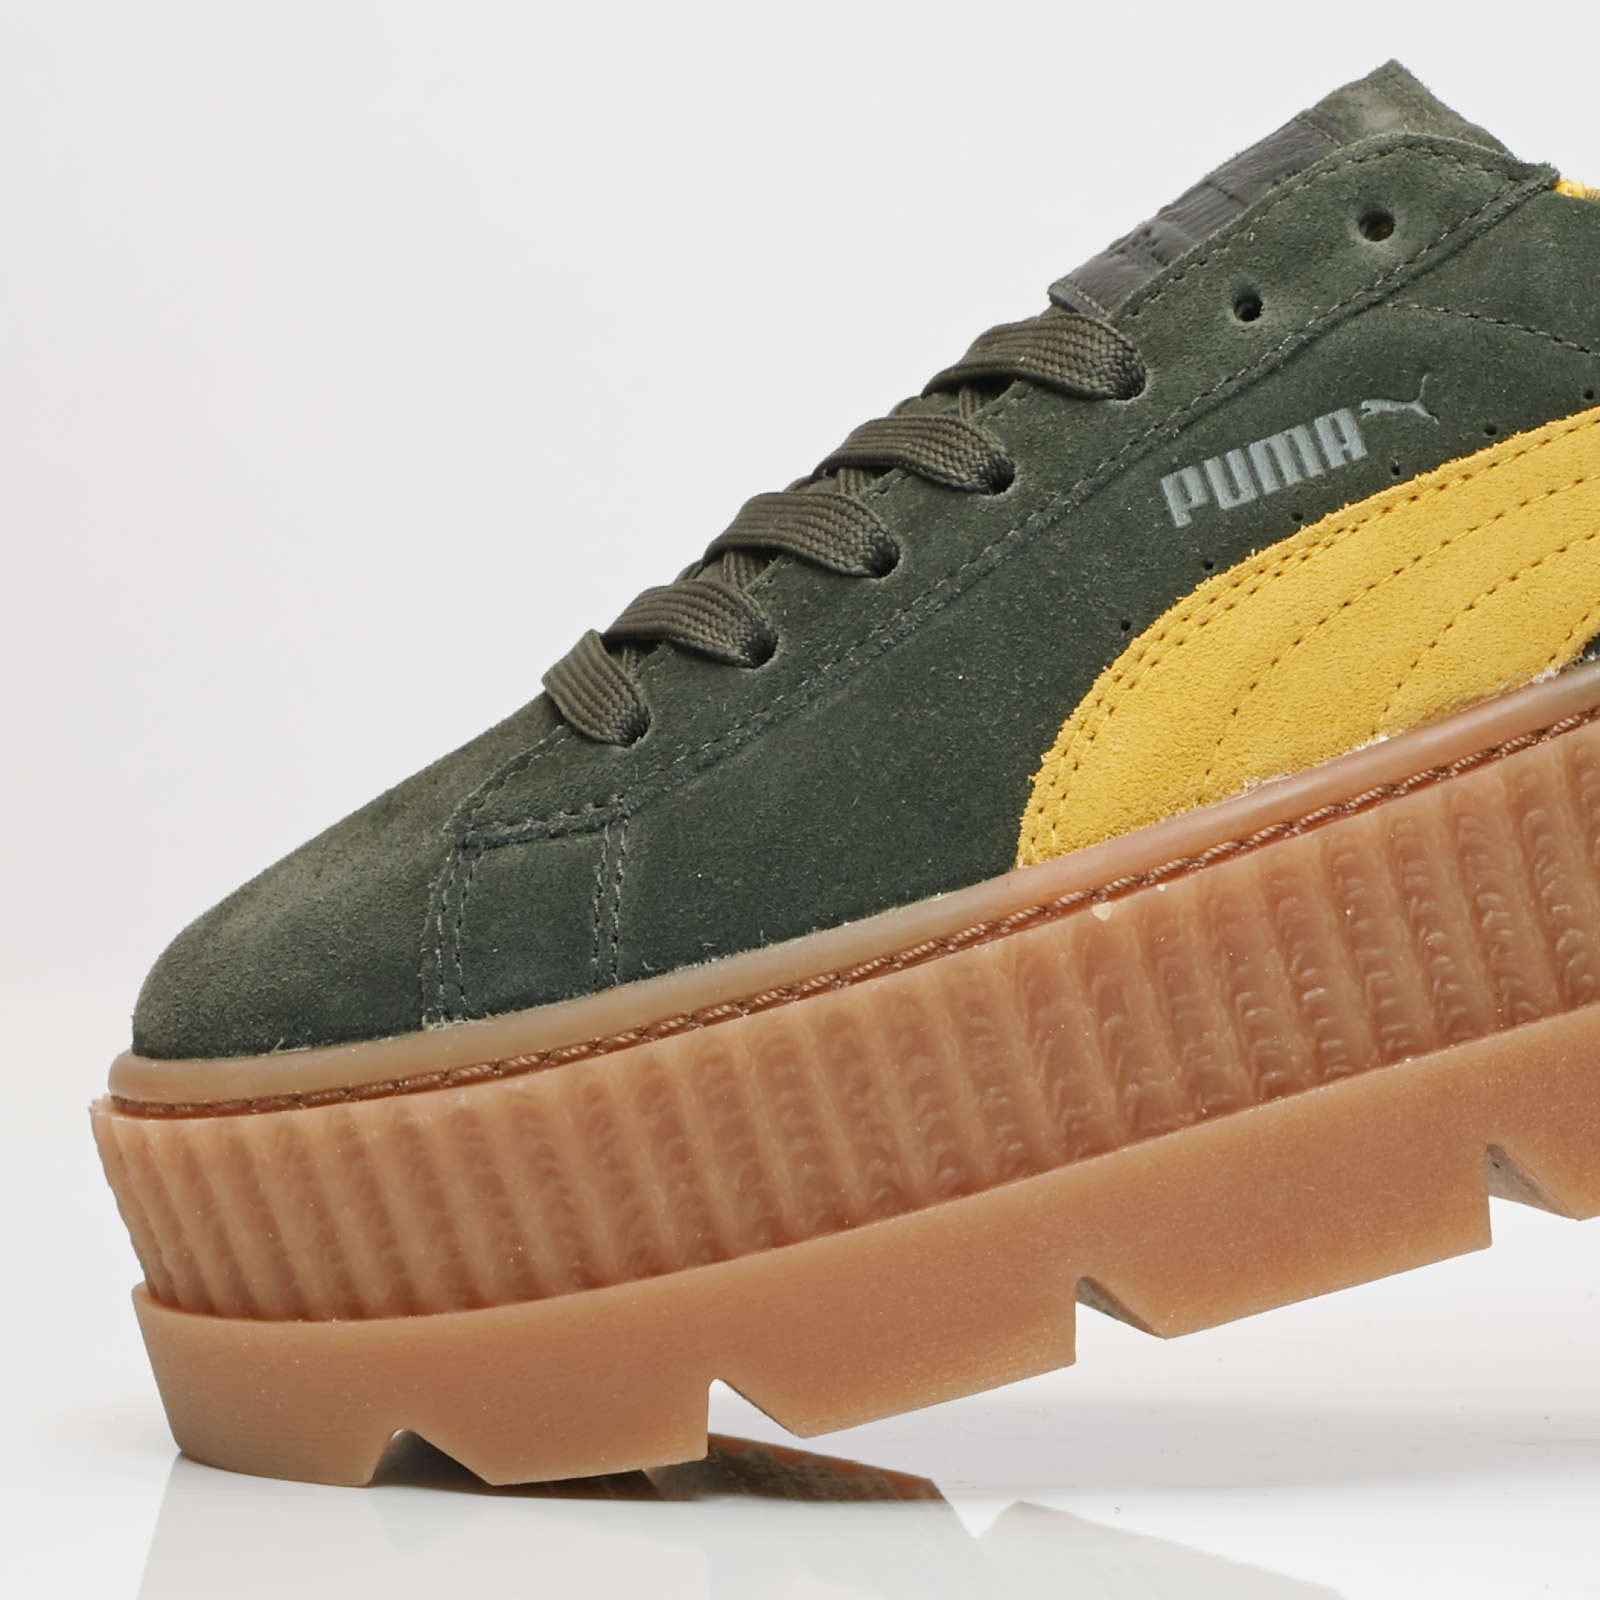 463be9159967 Puma Cleated Creeper Suede Wns - 366268-01 - Sneakersnstuff ...